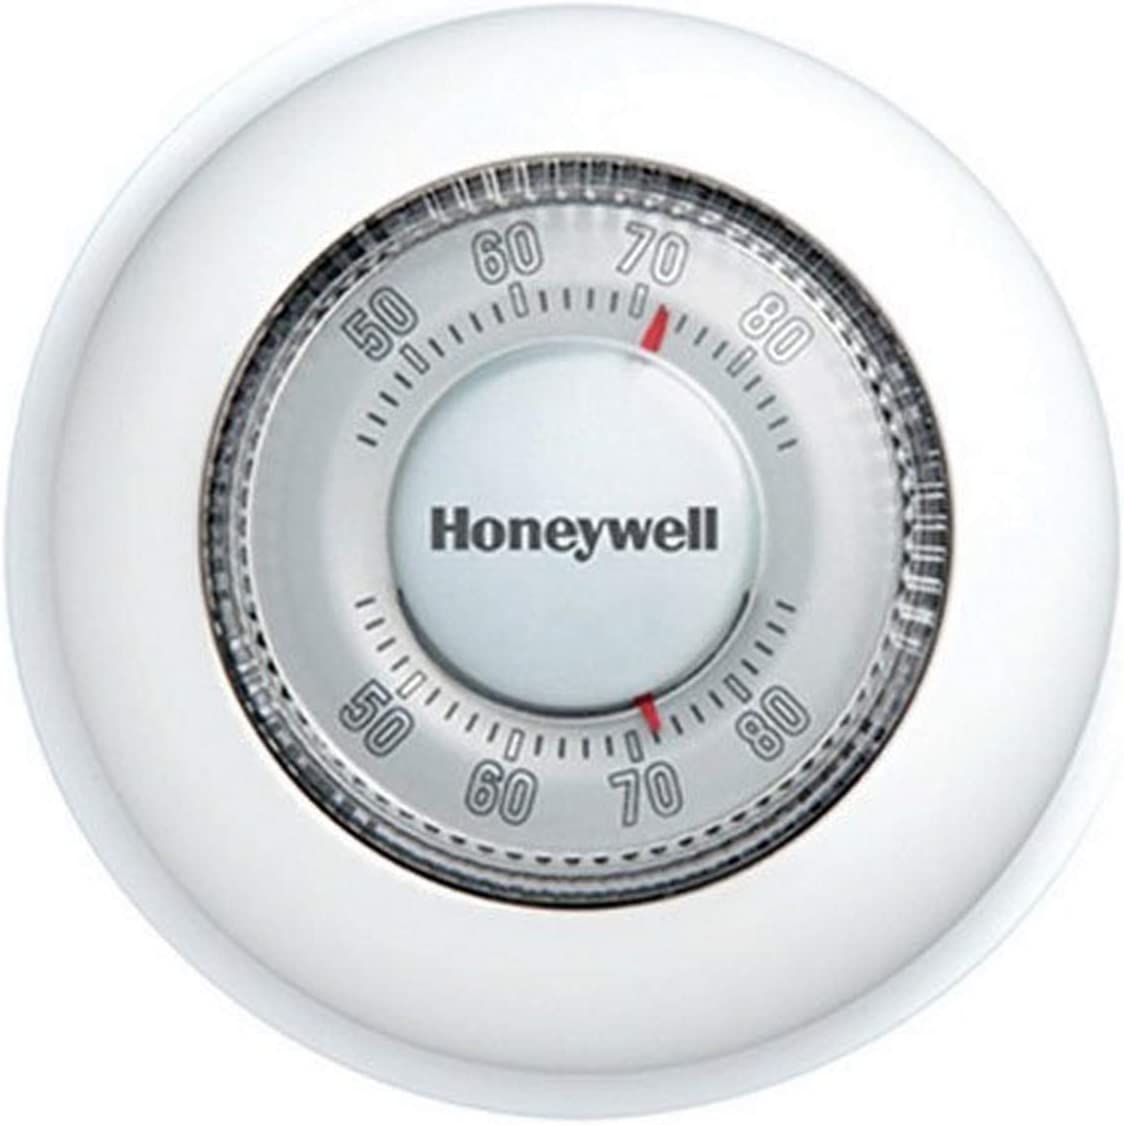 Honeywell Home CT87K1004 The Round Heat Only Manual Thermostat